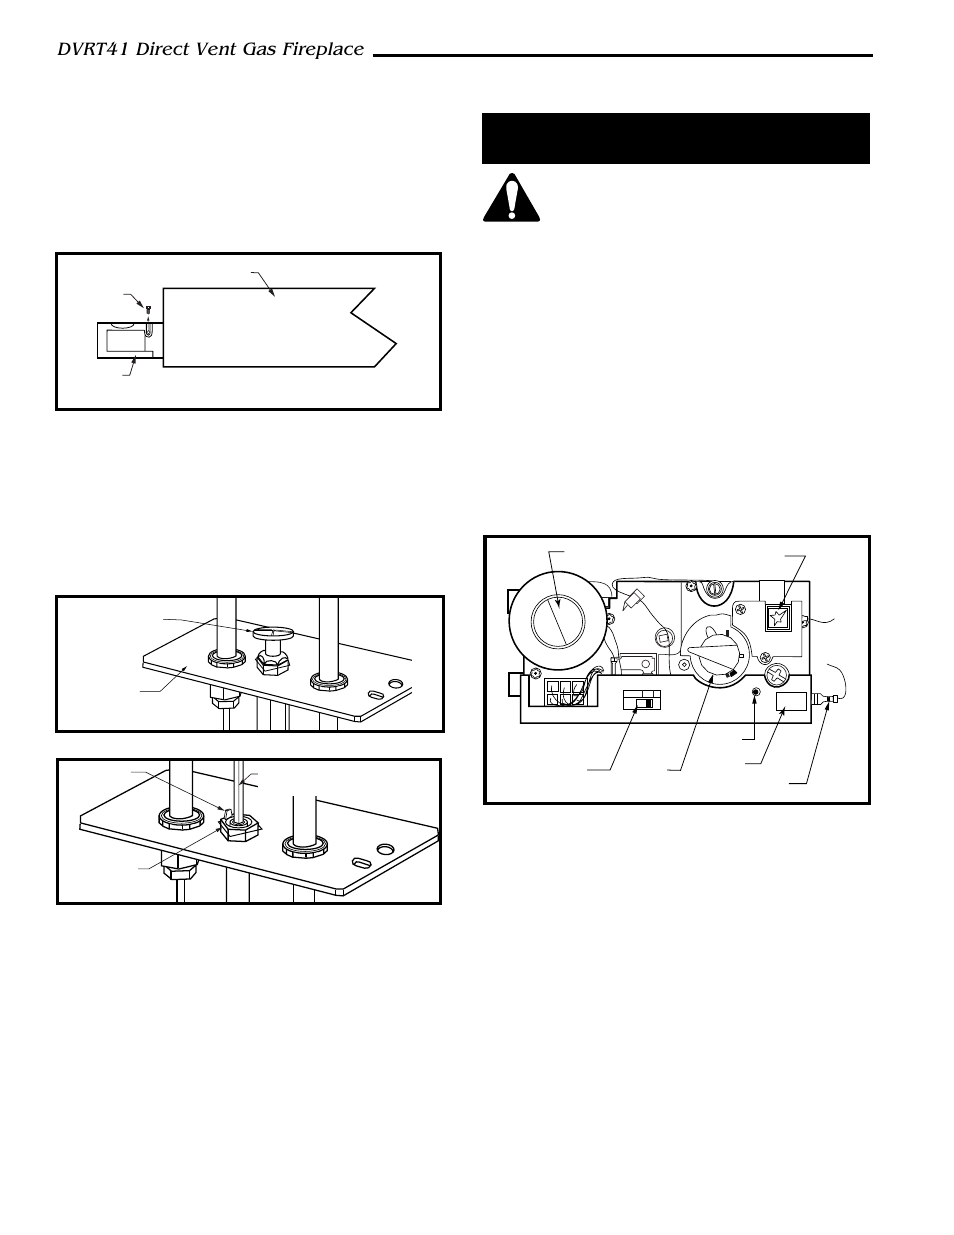 Dvrt41 Direct Vent Gas Fireplace Installation Precautions Conversion Procedure Vermont Casting User Manual Page 36 48